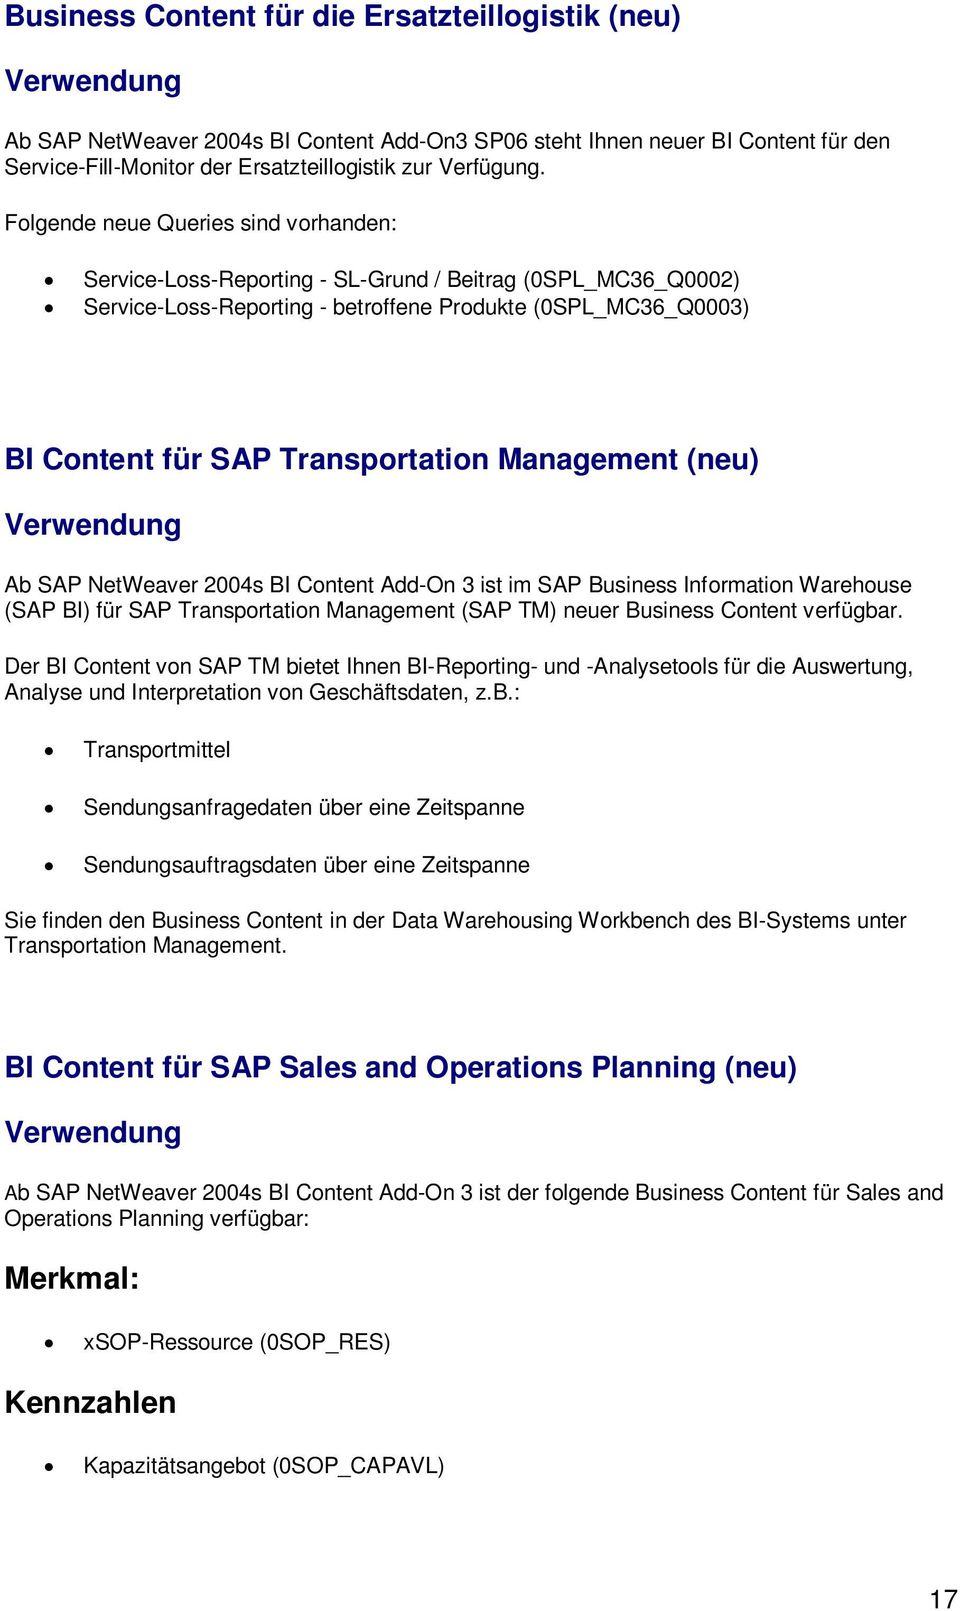 (neu) Ab SAP NetWeaver 2004s BI Cntent Add-On 3 ist im SAP Business Infrmatin Warehuse (SAP BI) für SAP Transprtatin Management (SAP TM) neuer Business Cntent verfügbar.